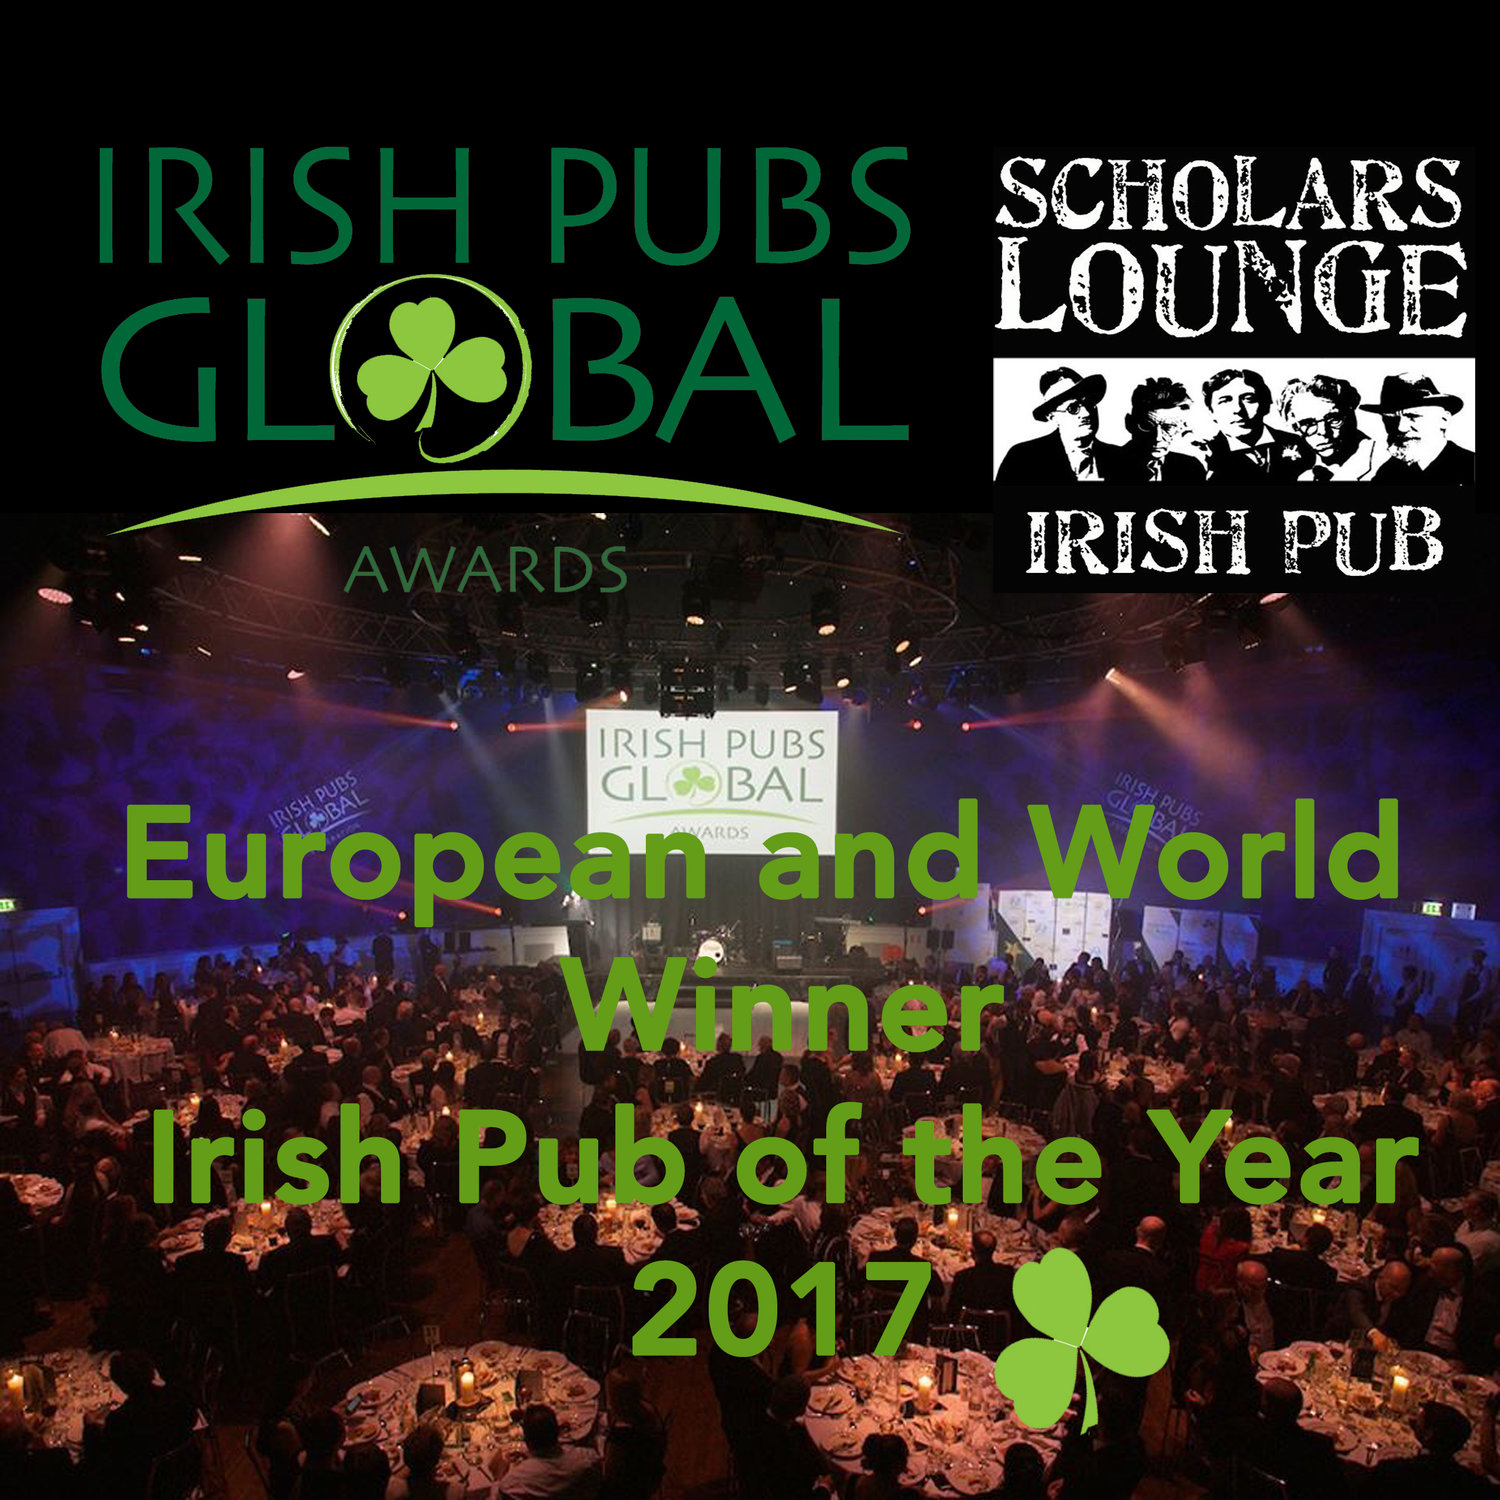 Scholars Lounge Irish Pub Rome